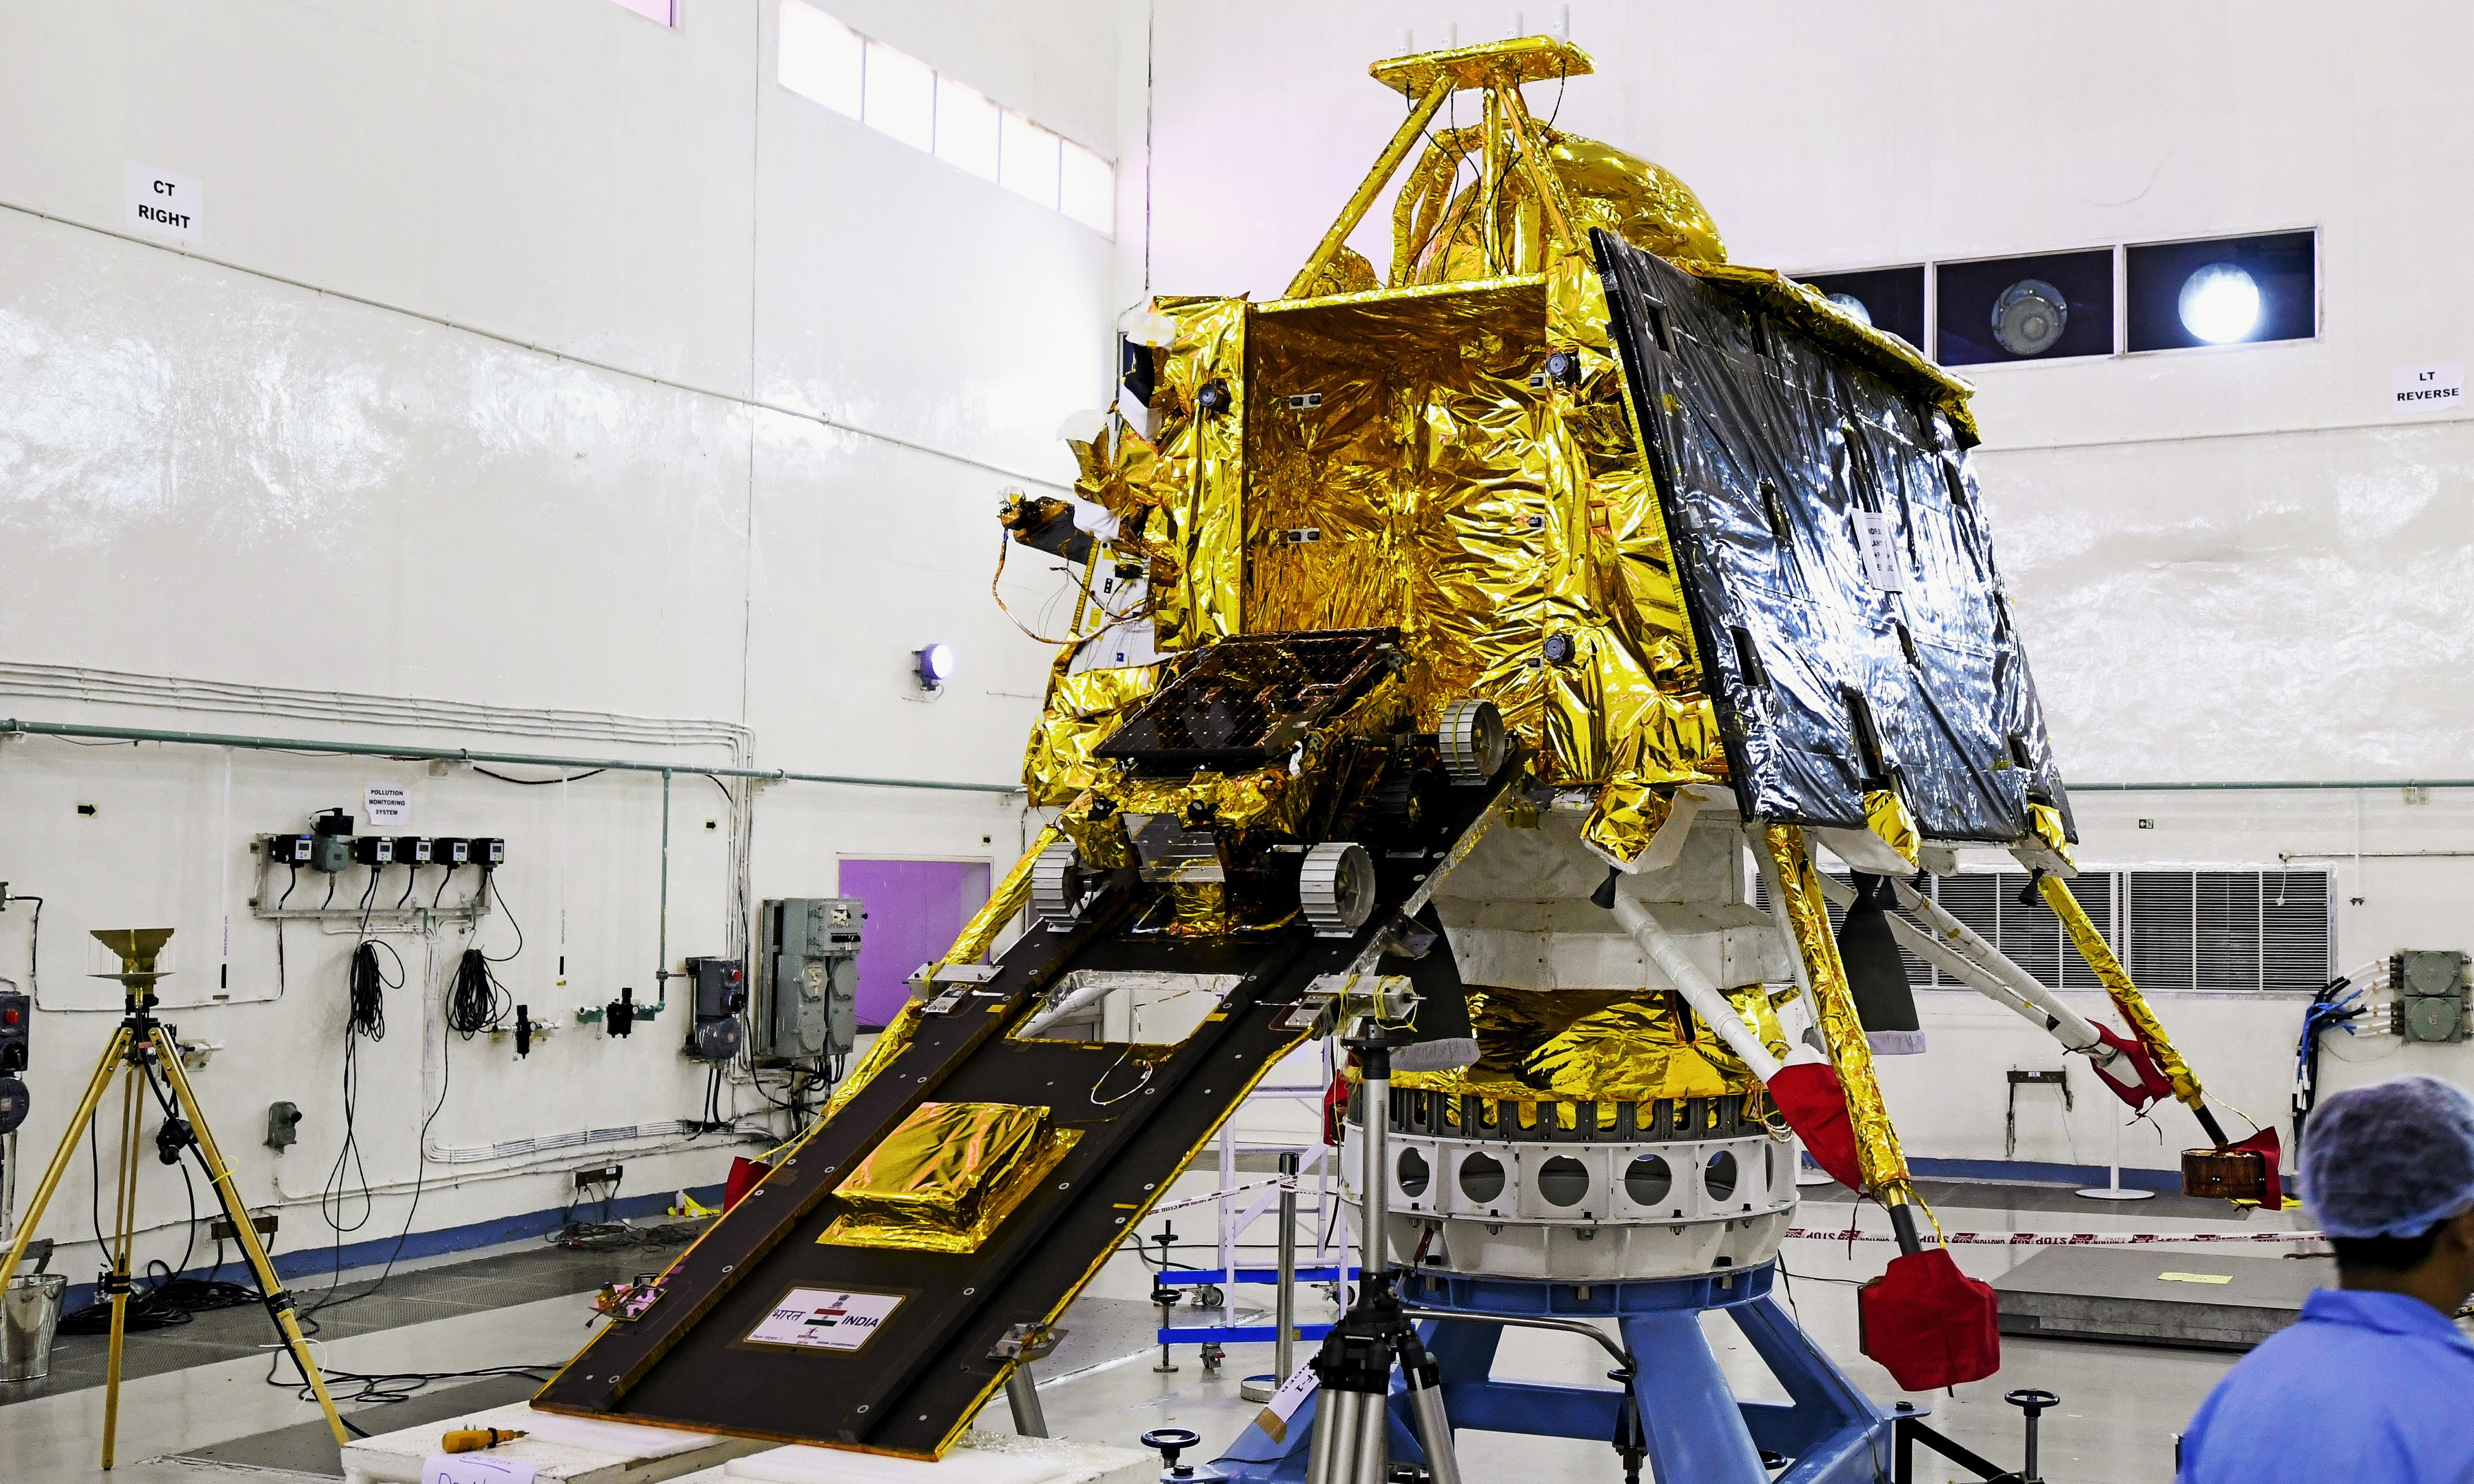 India's Chandrayaan-2 moon mission called off minutes before launch